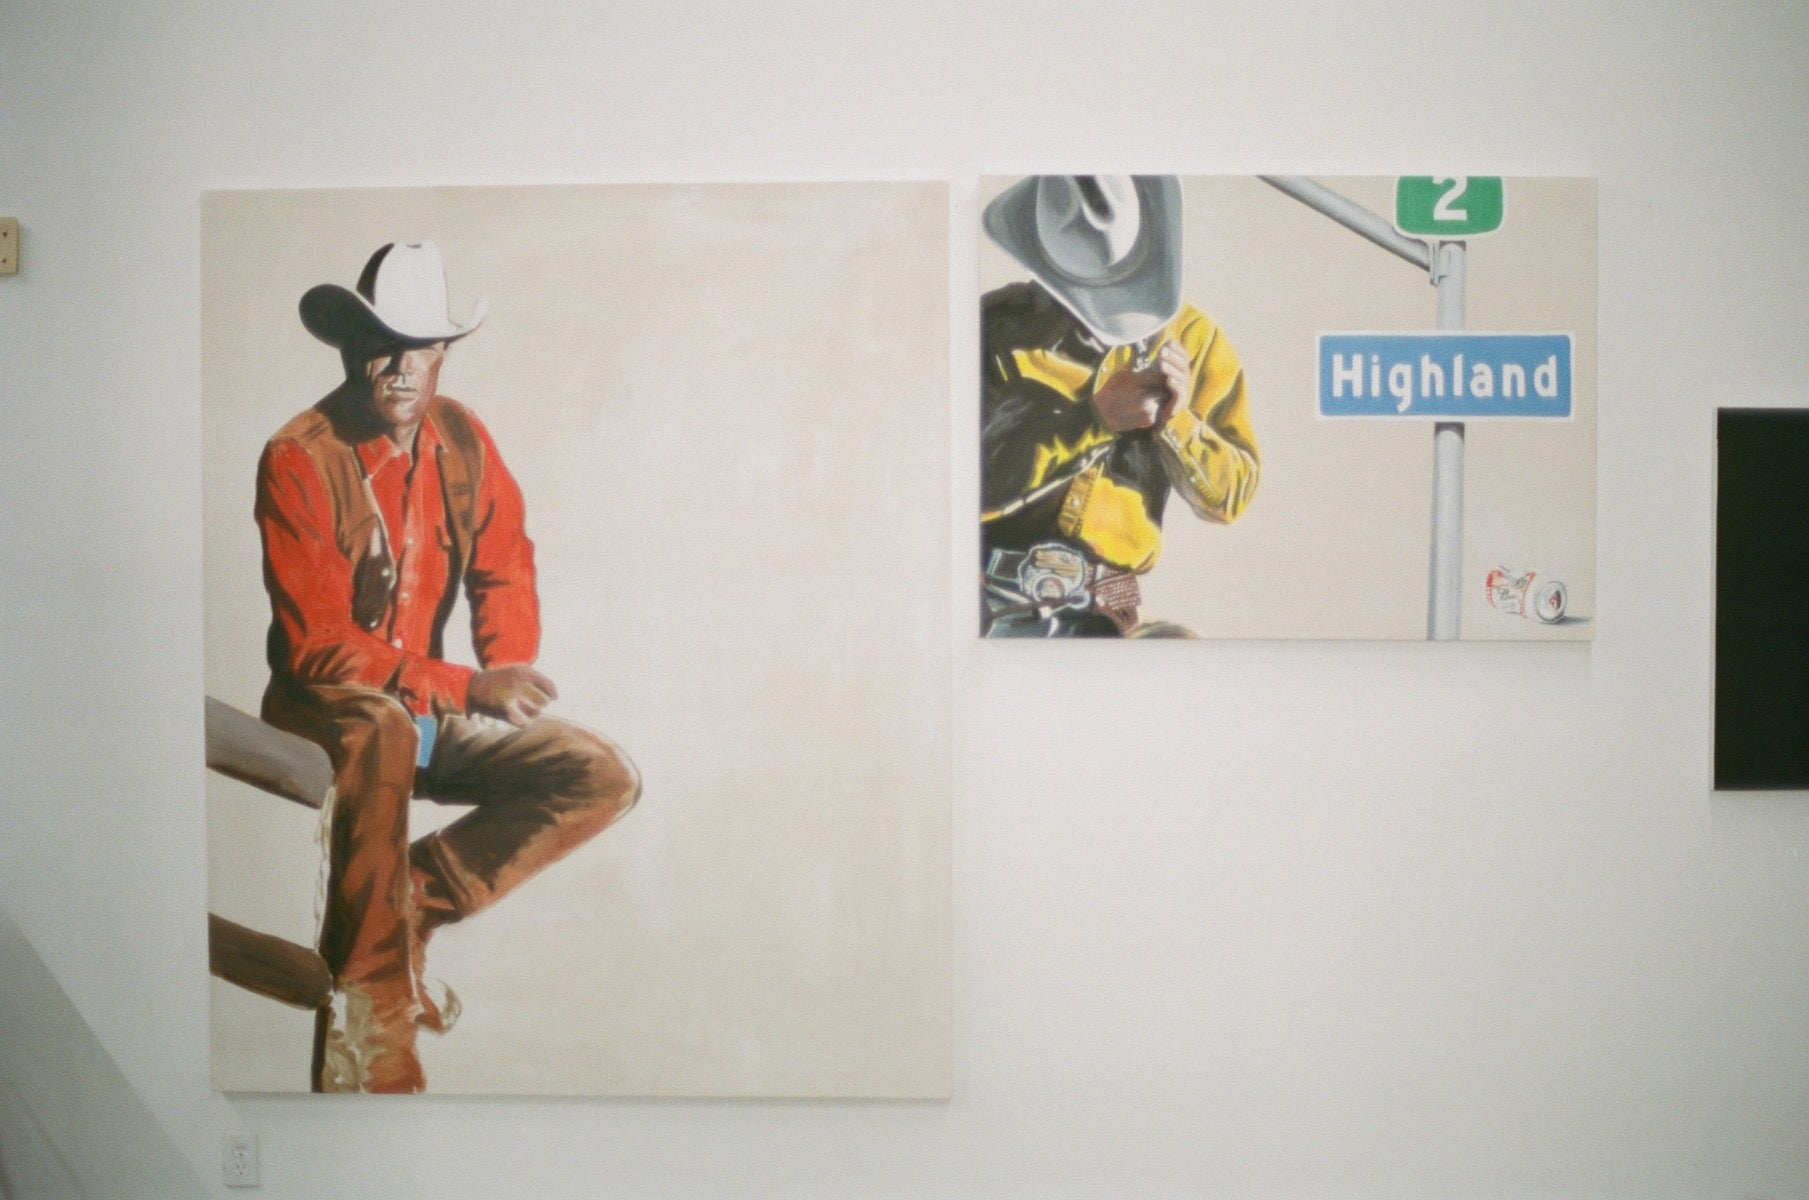 Two paintings of cowboys sitting pensively and smoking by Matt McCormick